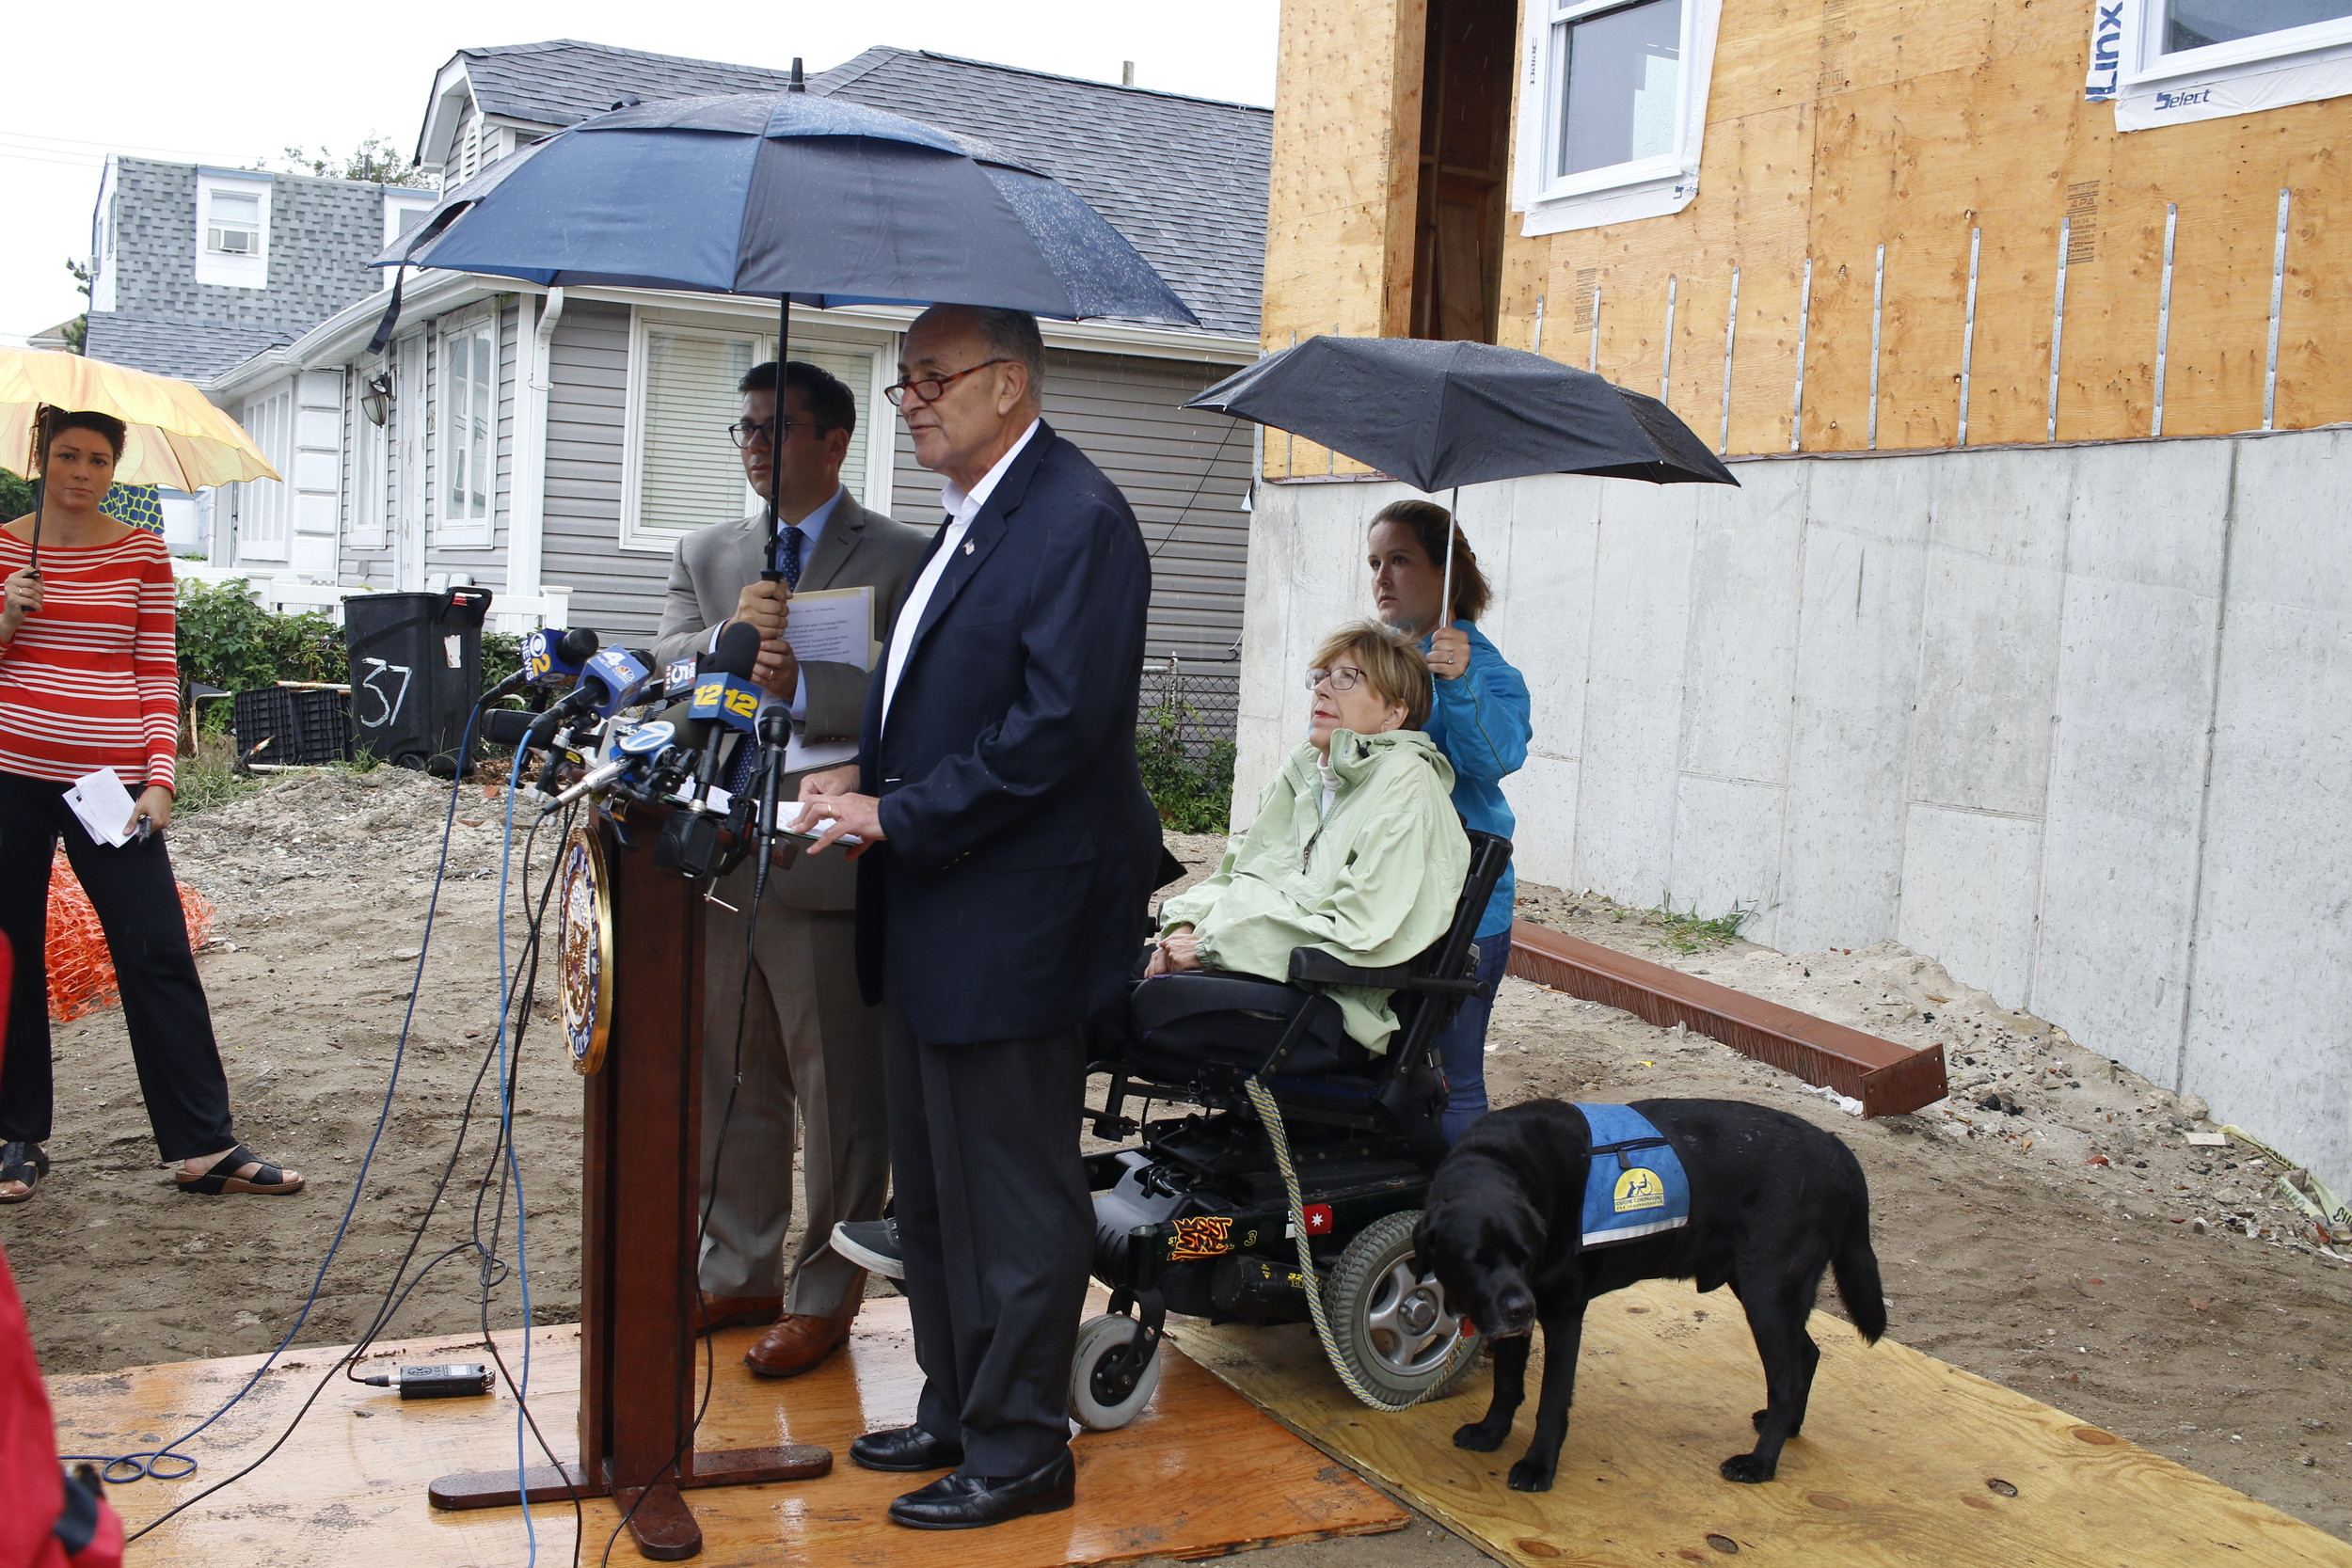 U.S. Sen. Chuck Schumer spoke in front of the unfinished home of Long Beach resident Liz Treston on Aug. 29, 